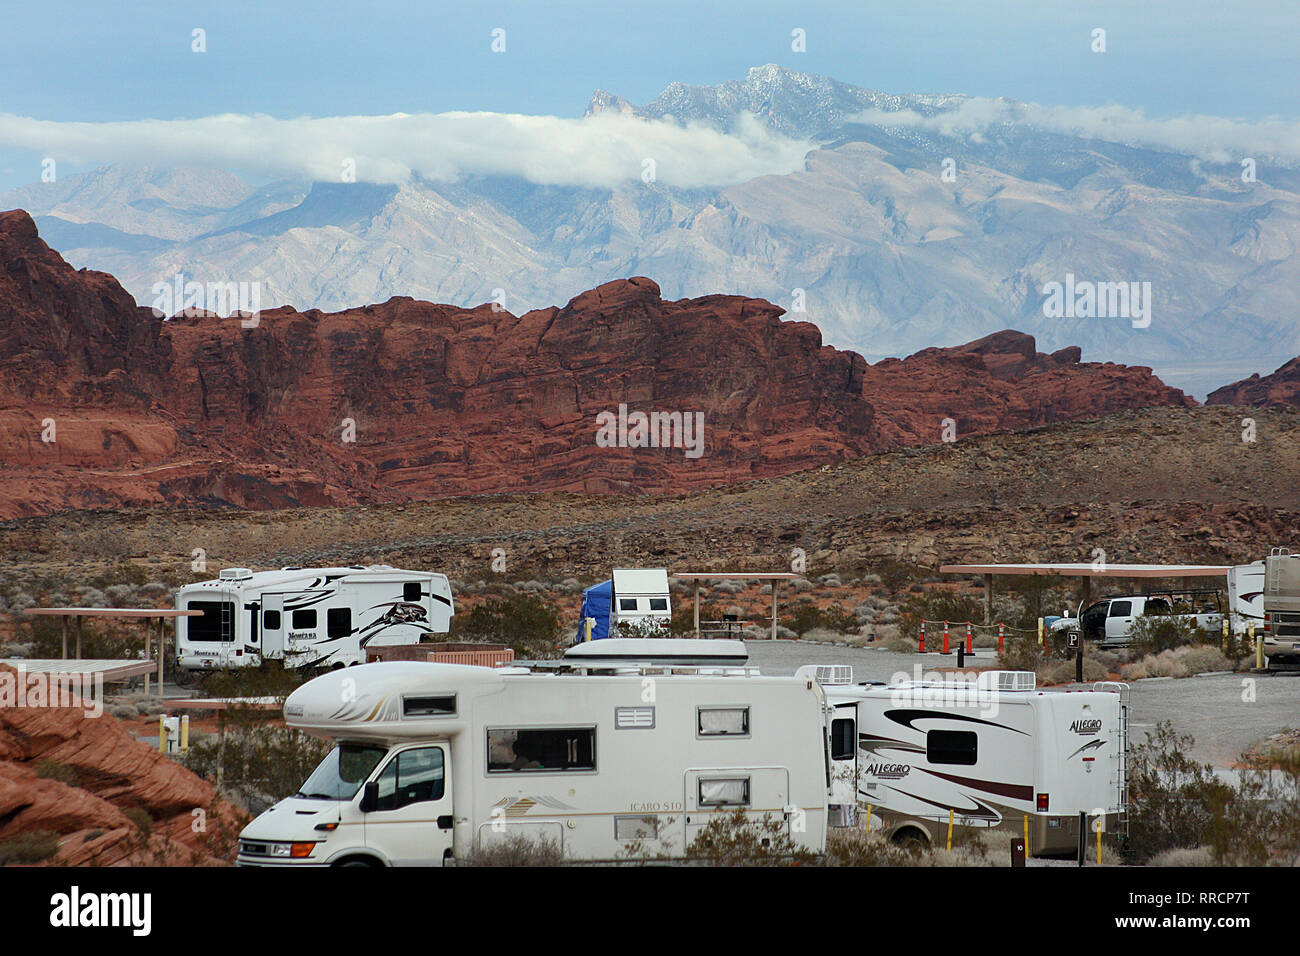 Rv Camping At The Valley Of Fire State Park Nevada Usa Stock Photo Alamy